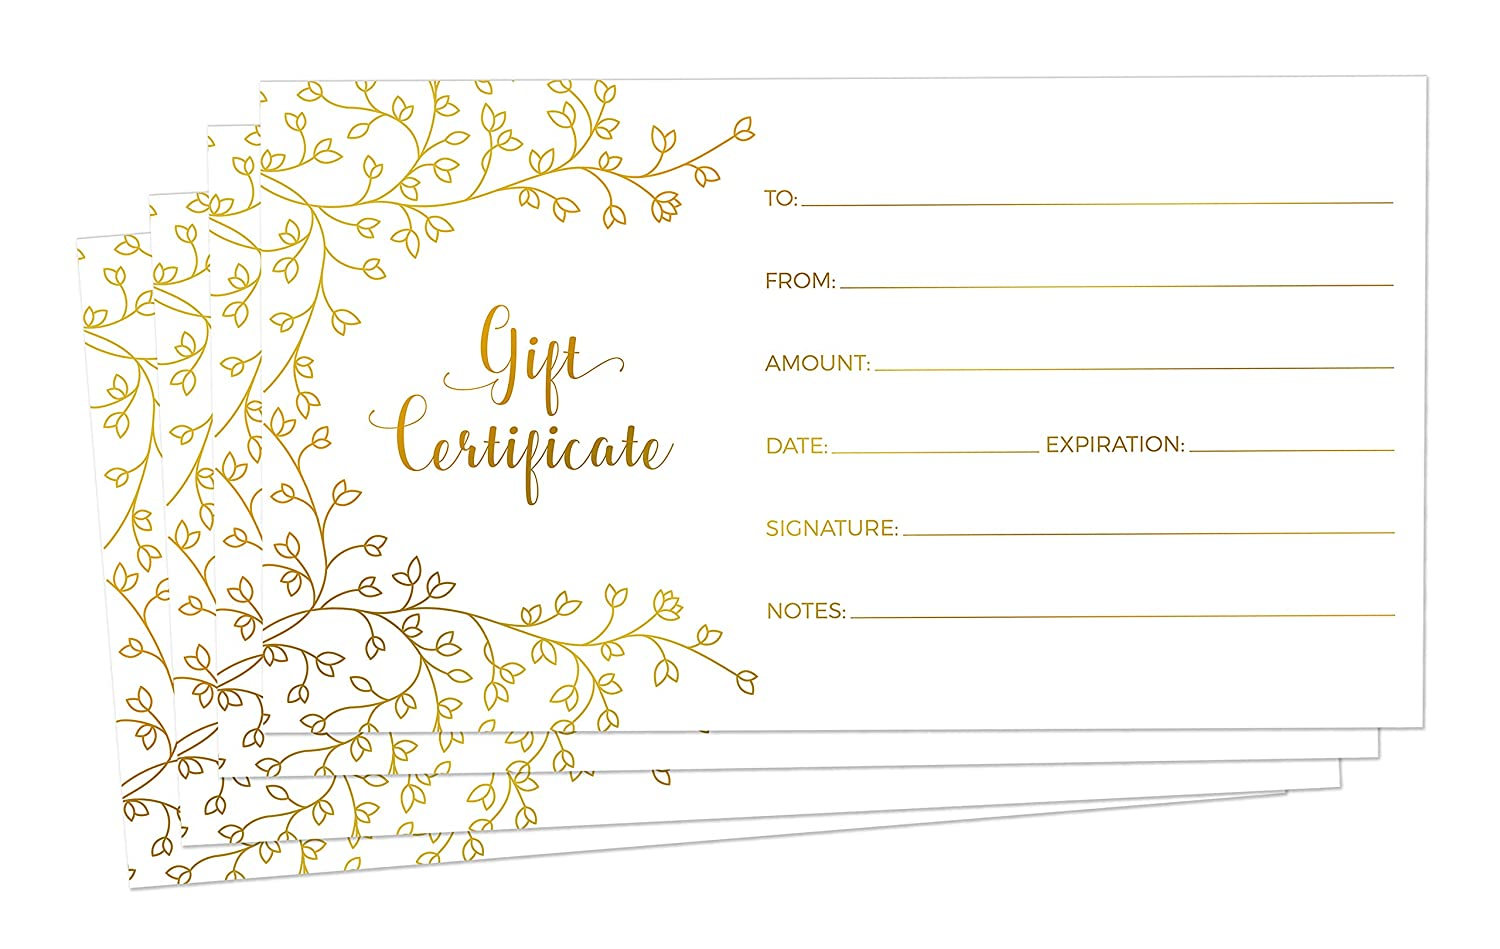 Blank Gift Certificates for Business - 25 Gold Foil Gift Certificate Cards with Envelopes for Spa, Salon, Restaurants, Custom Client Vouchers for Birthday, Work Gift Card - 3.75x7.5""